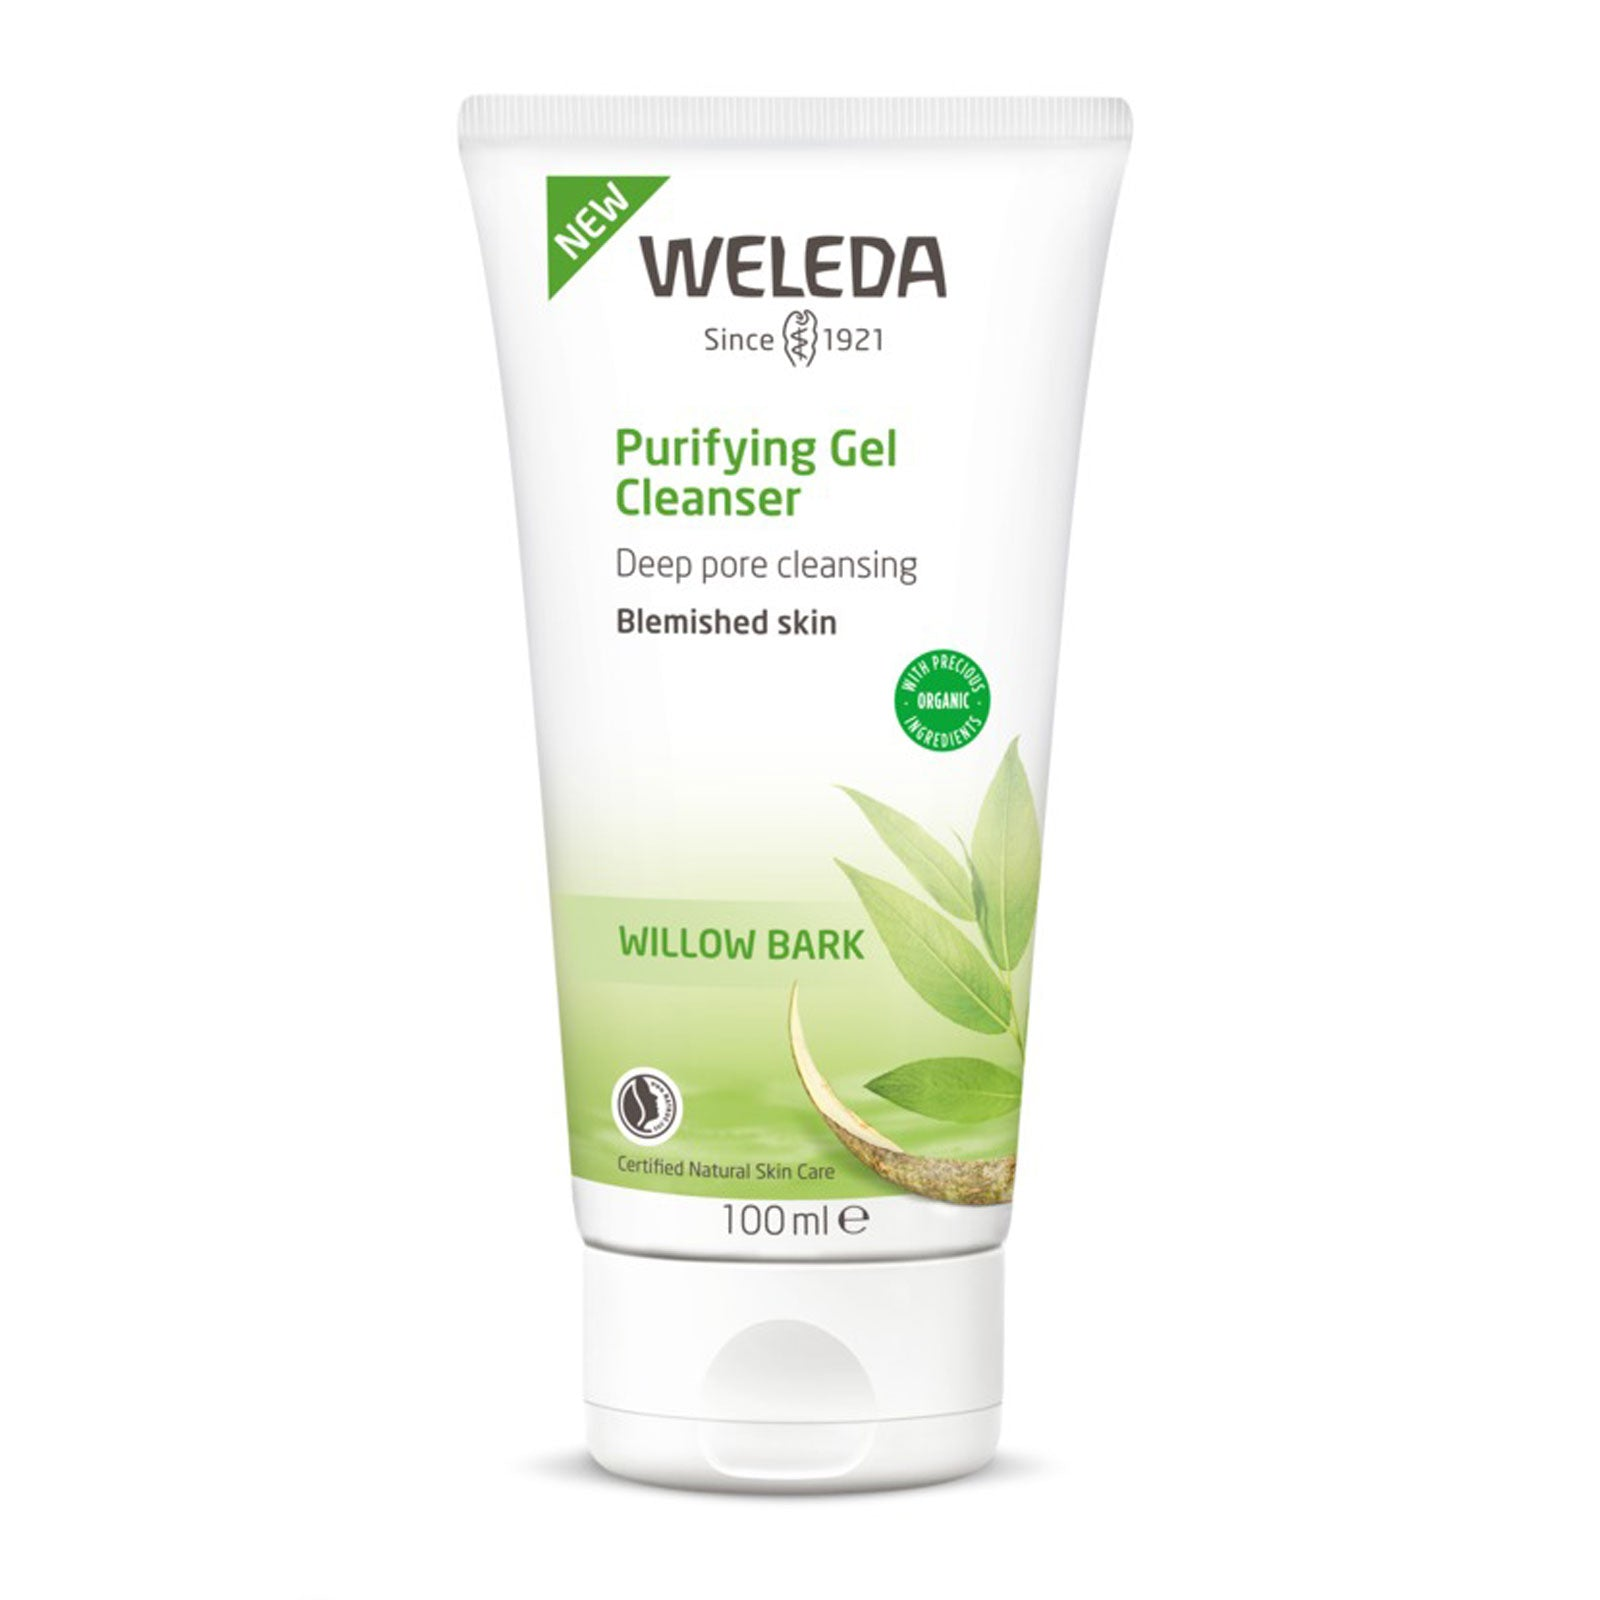 Weleda Purifying Gel Cleanser 100ml